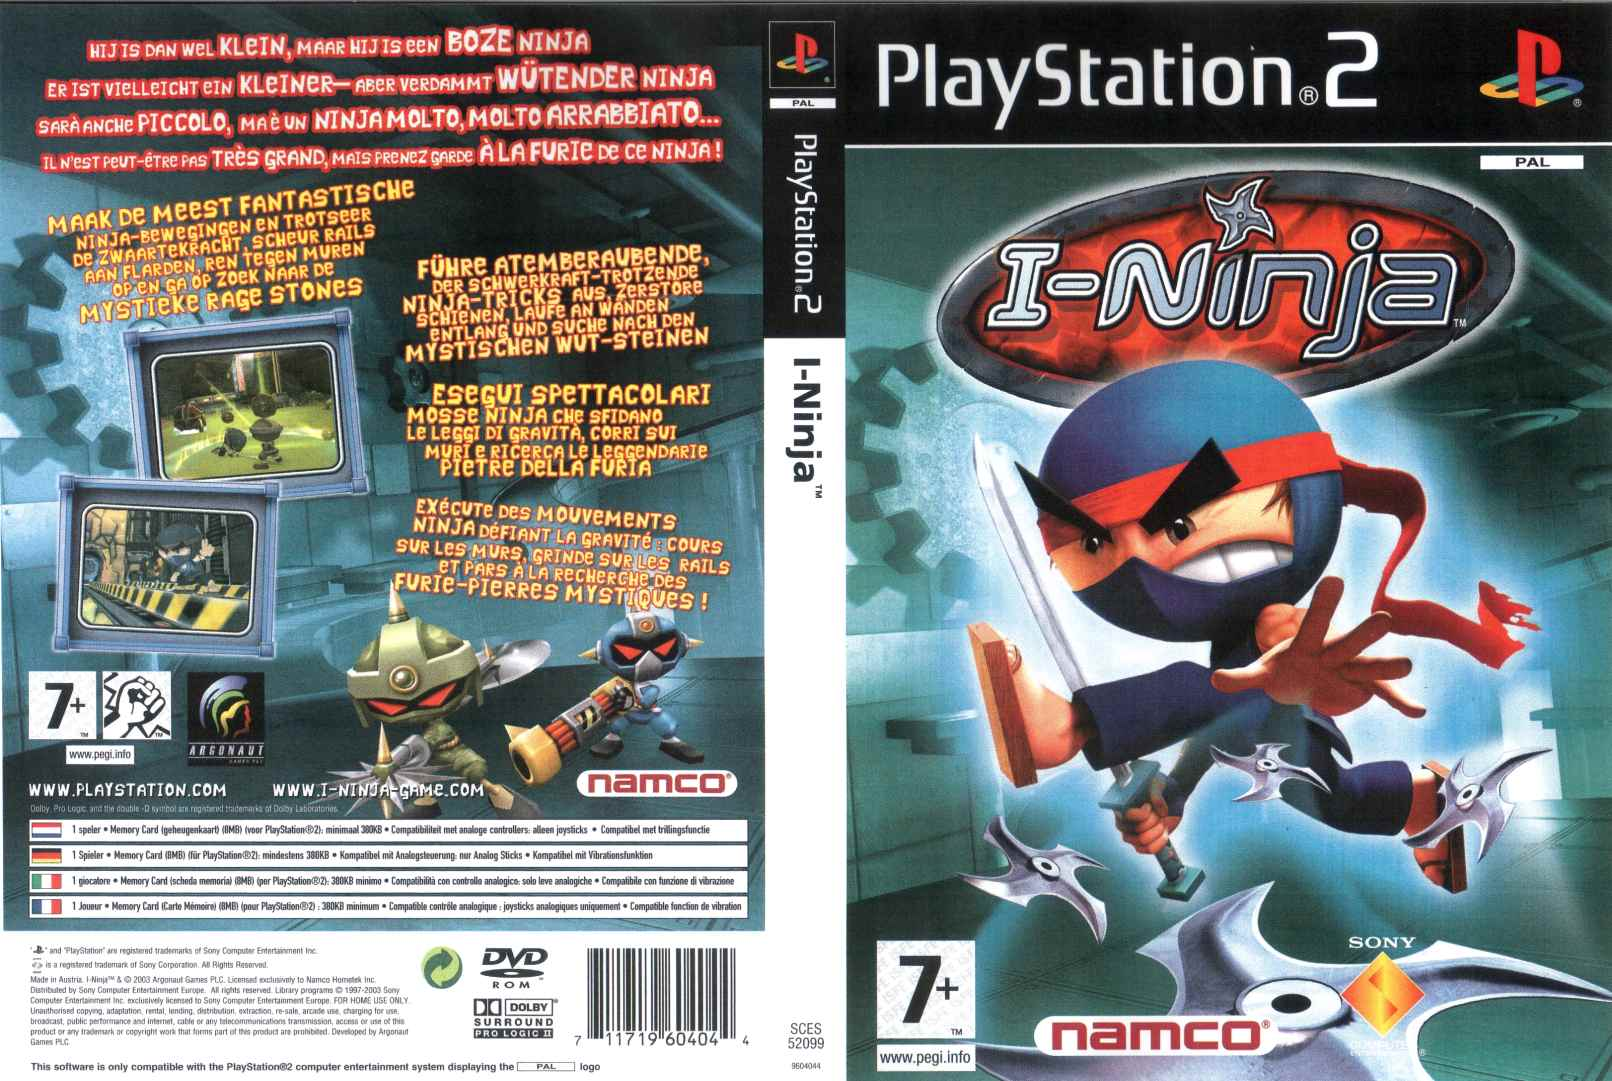 ps2 iso rom pack